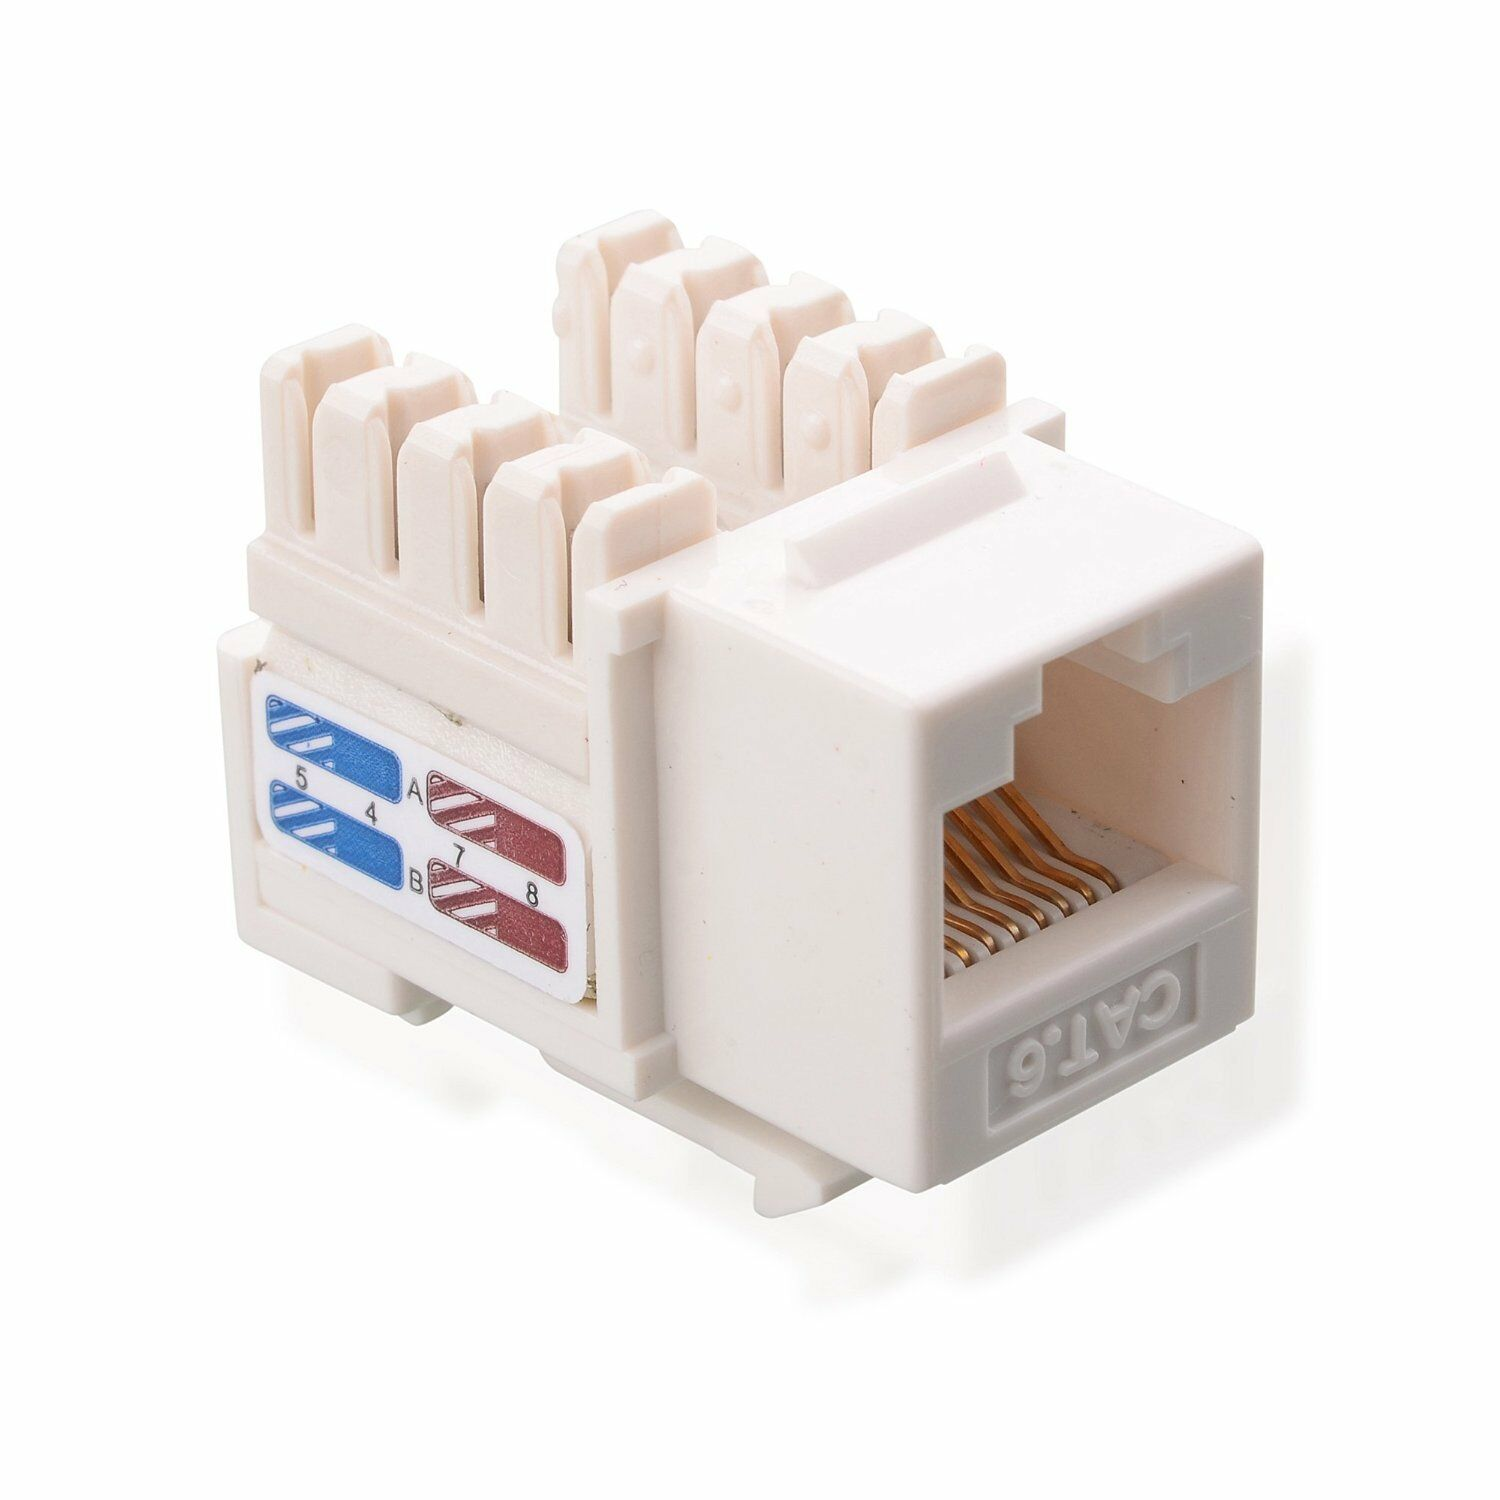 Cable Matters 50 Pack Cat6 Rj 45 Keystone Jack In White With Punch Wiring Block Kit Picture 1 Of 5